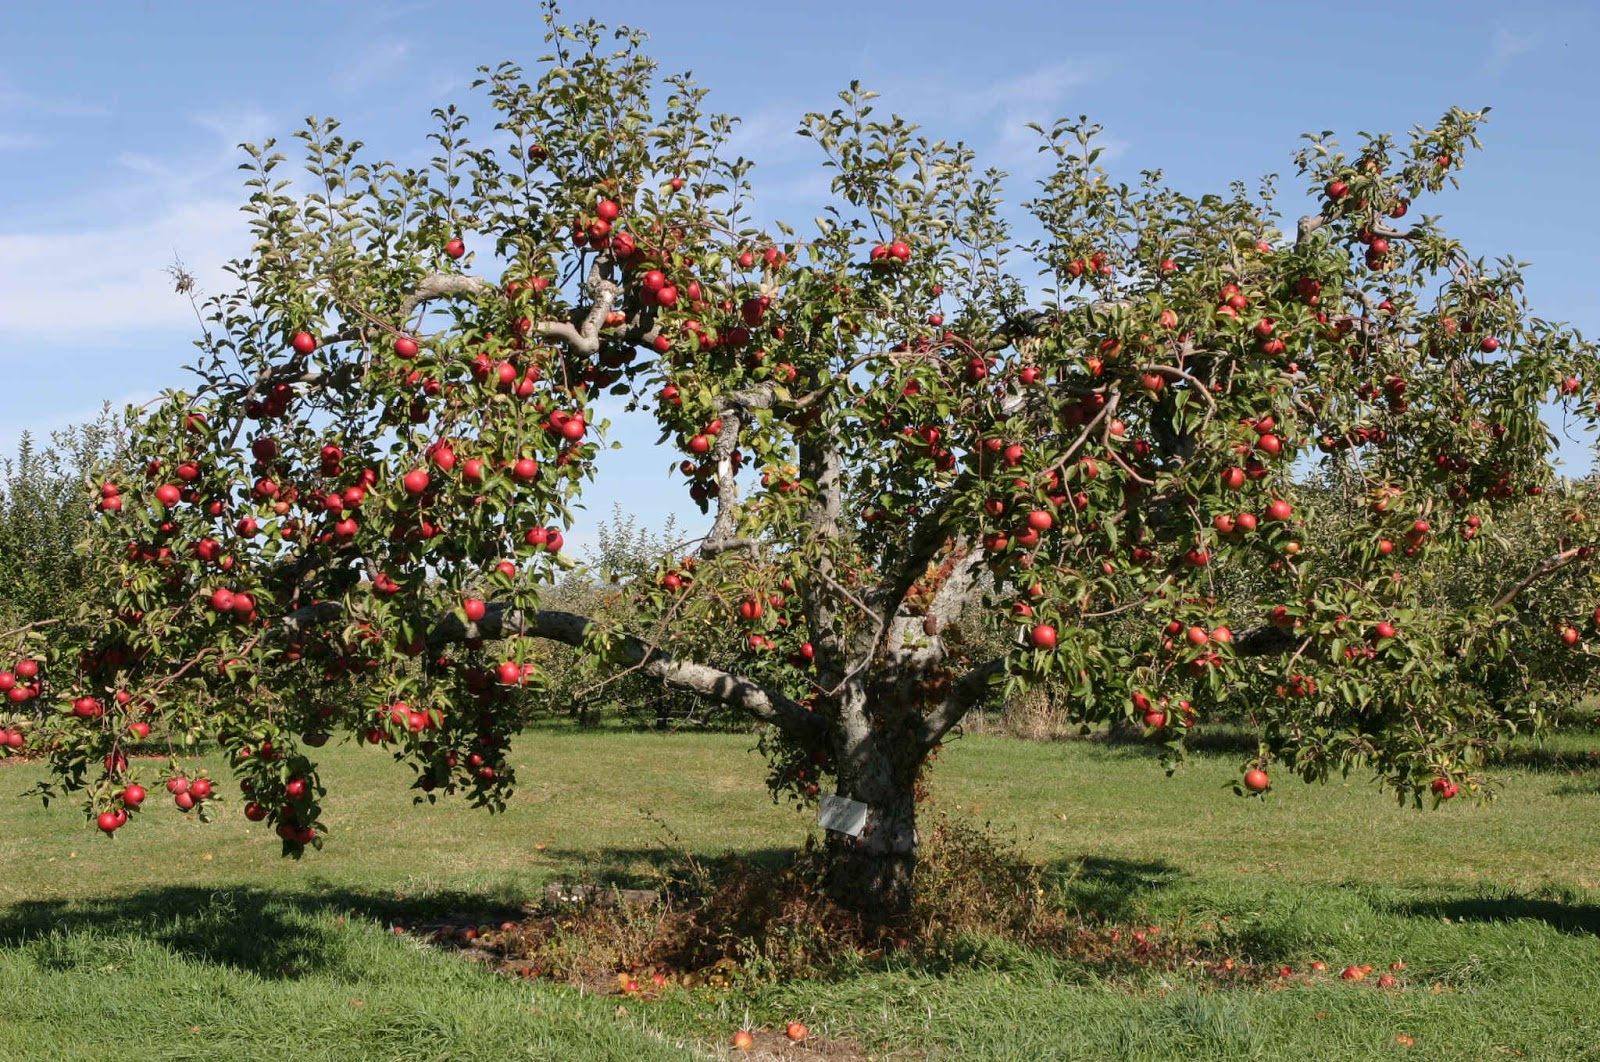 How To Prune An Apple Tree The Garden Of Eaden